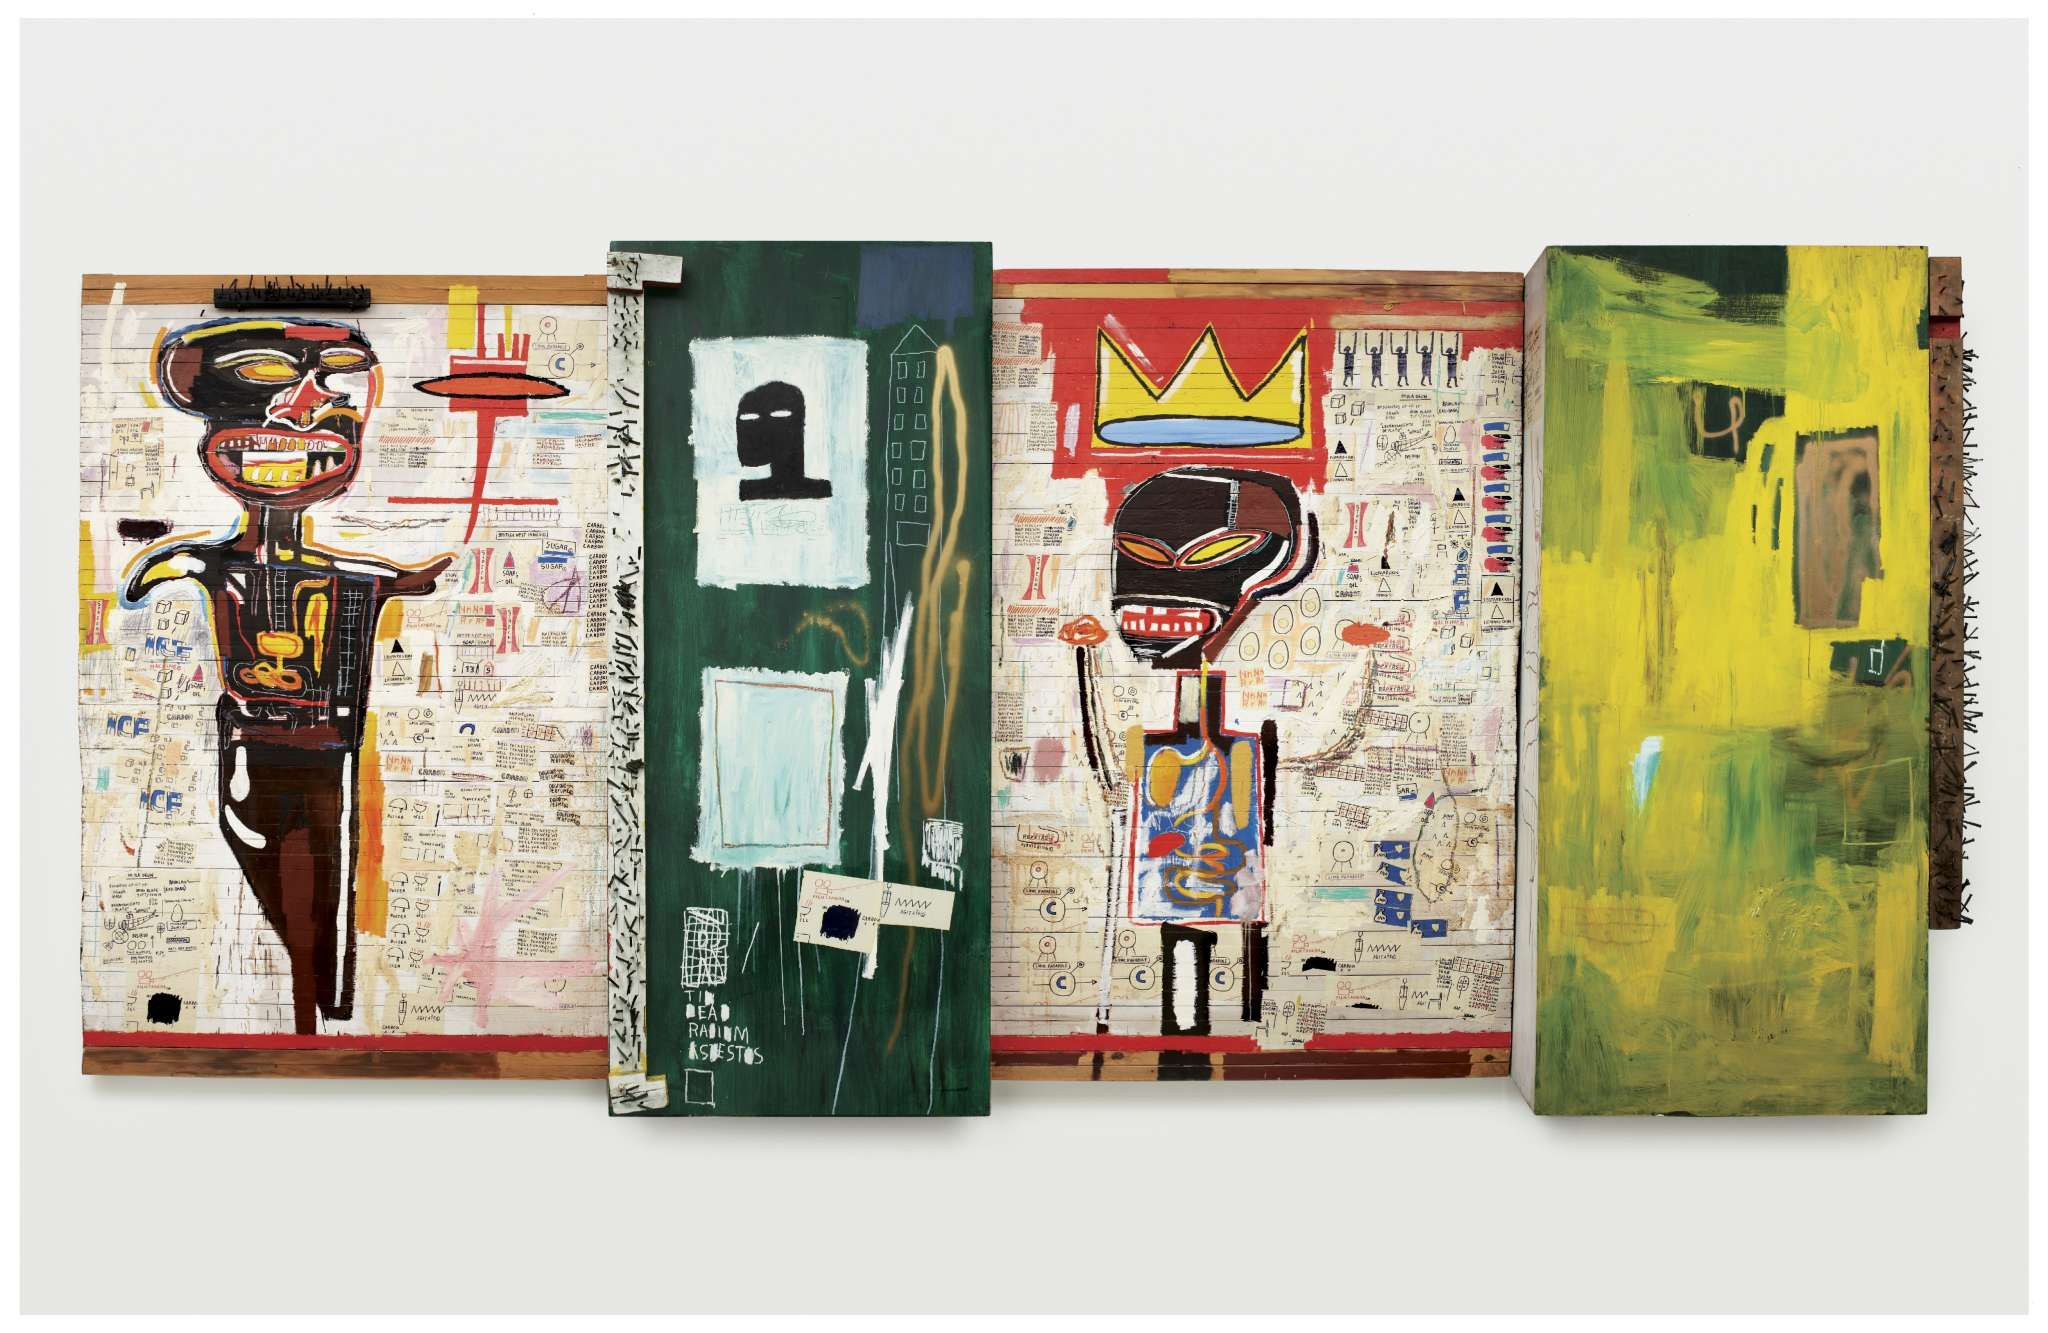 exposition Basquiat Fondation Louis Vuitton Paris